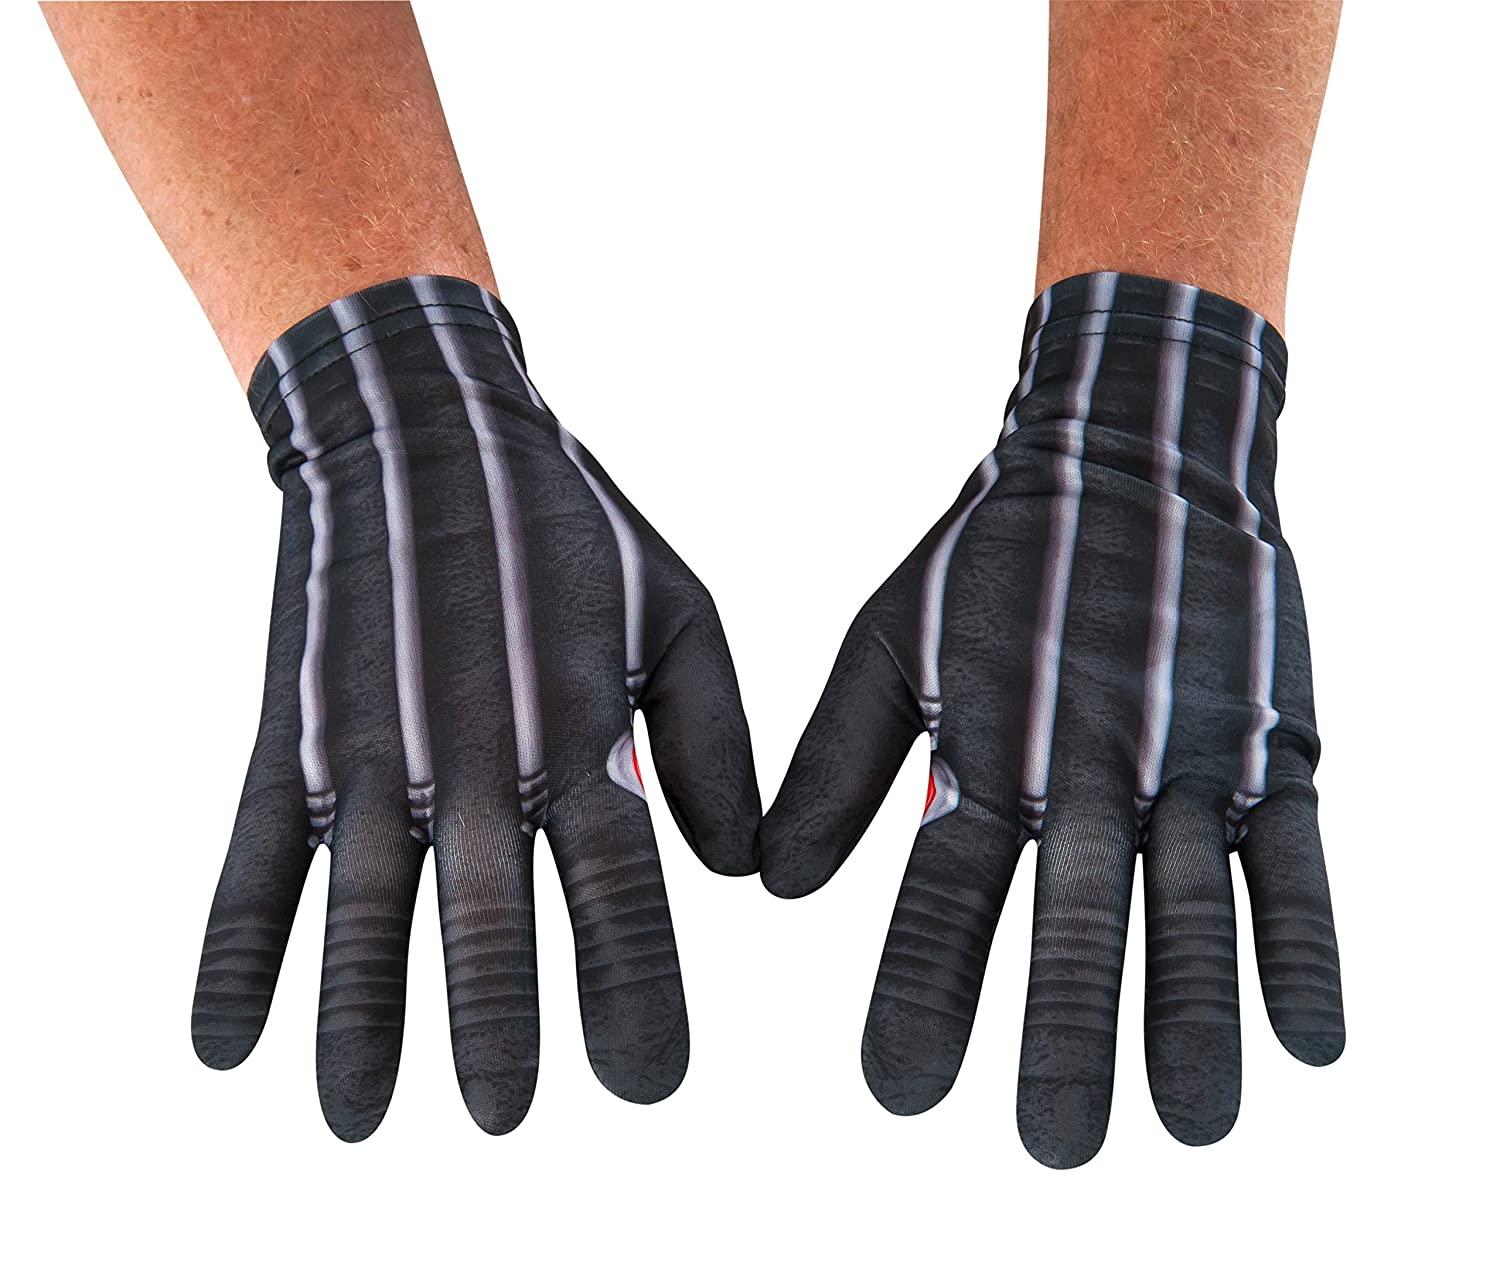 Rubie's Costume CO Men's Ant-Man Gloves